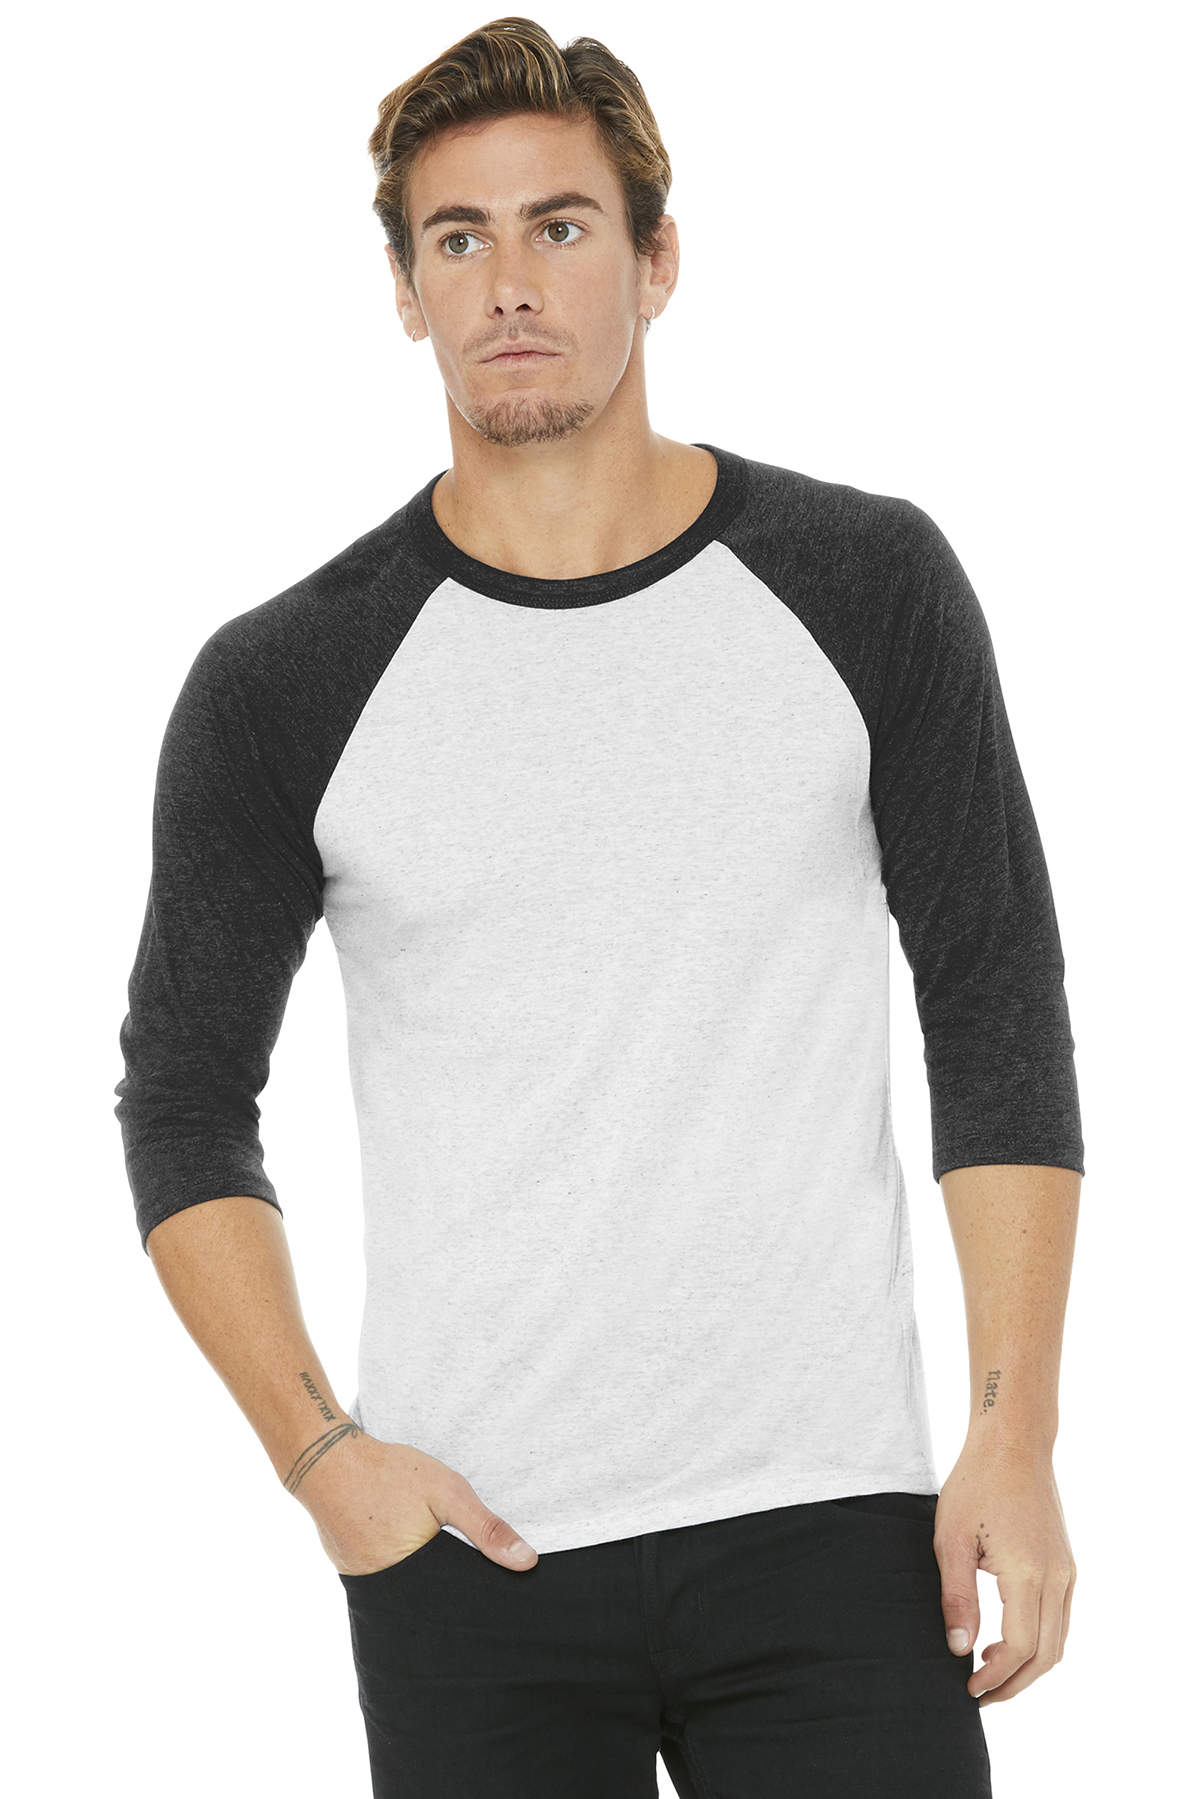 49bdfb32 BELLA+CANVAS ® Unisex 3/4-Sleeve Baseball Tee | Adult/Men | T ...